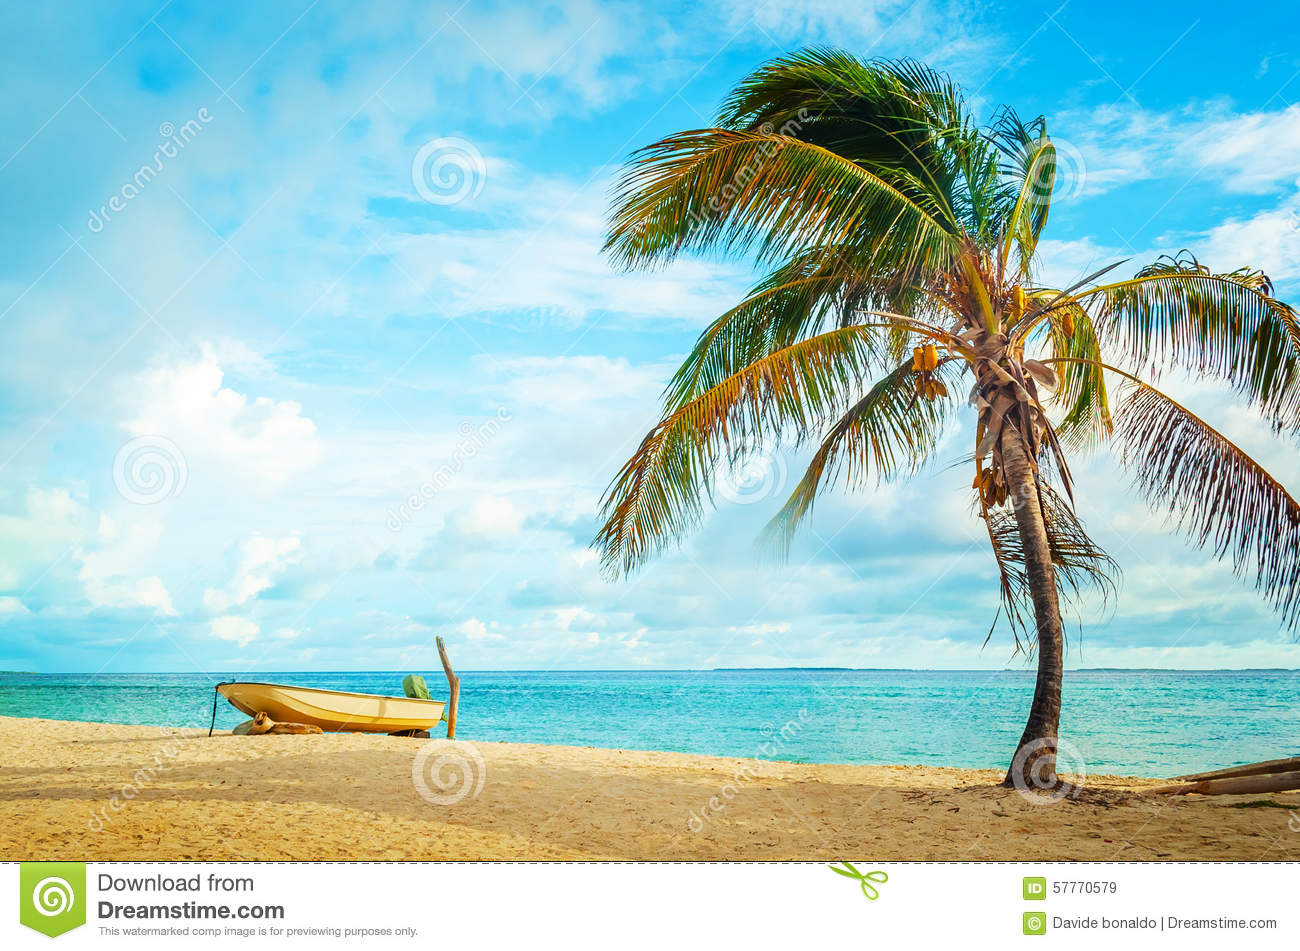 Caribbean Relaxation: Boat And Coconut Tree On Caribbean Beach Stock Image